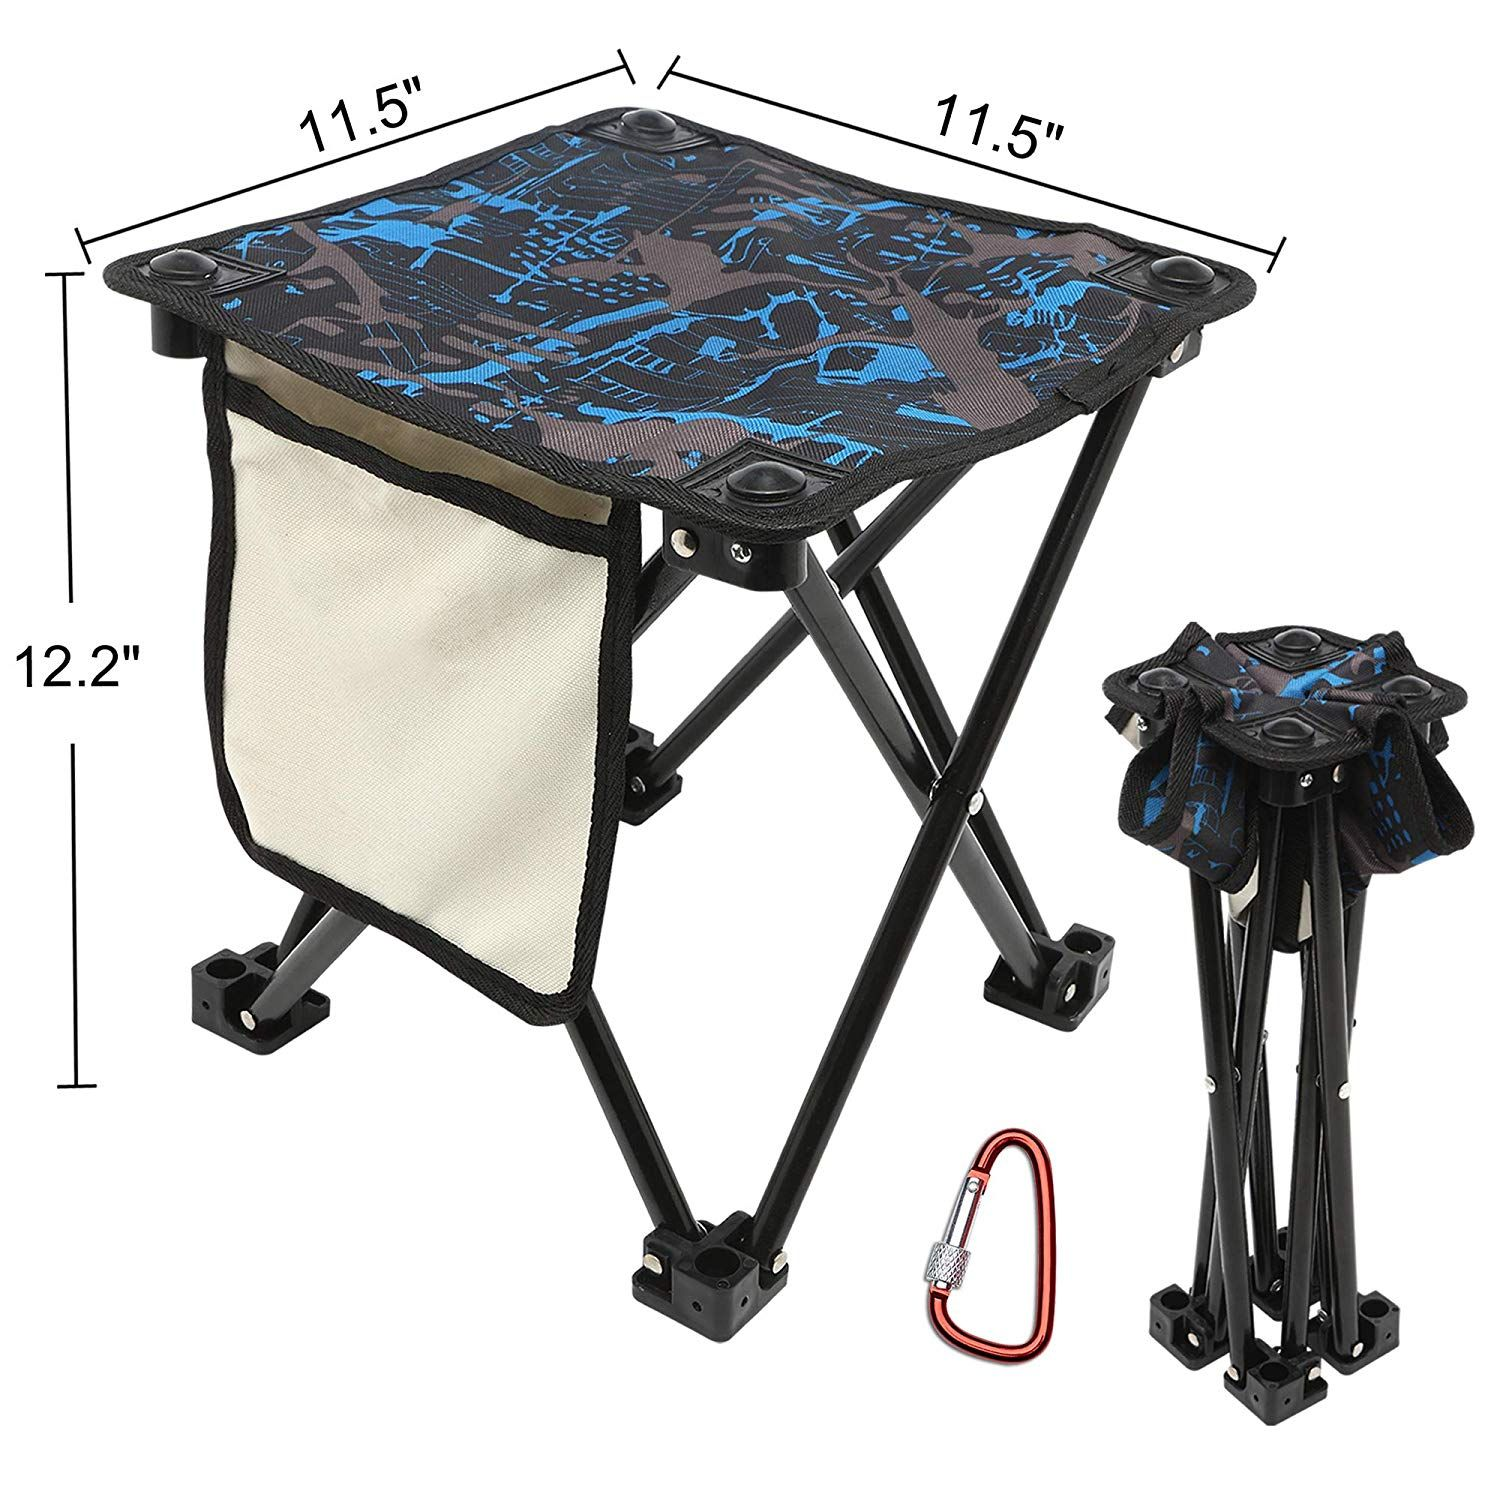 Camouflage Camping Fishing Stool for Adults Fishing Hiking Gardening and Beach with Carry Bag Hold Up to 450lbs MingSo Mini Portable Folding Stool